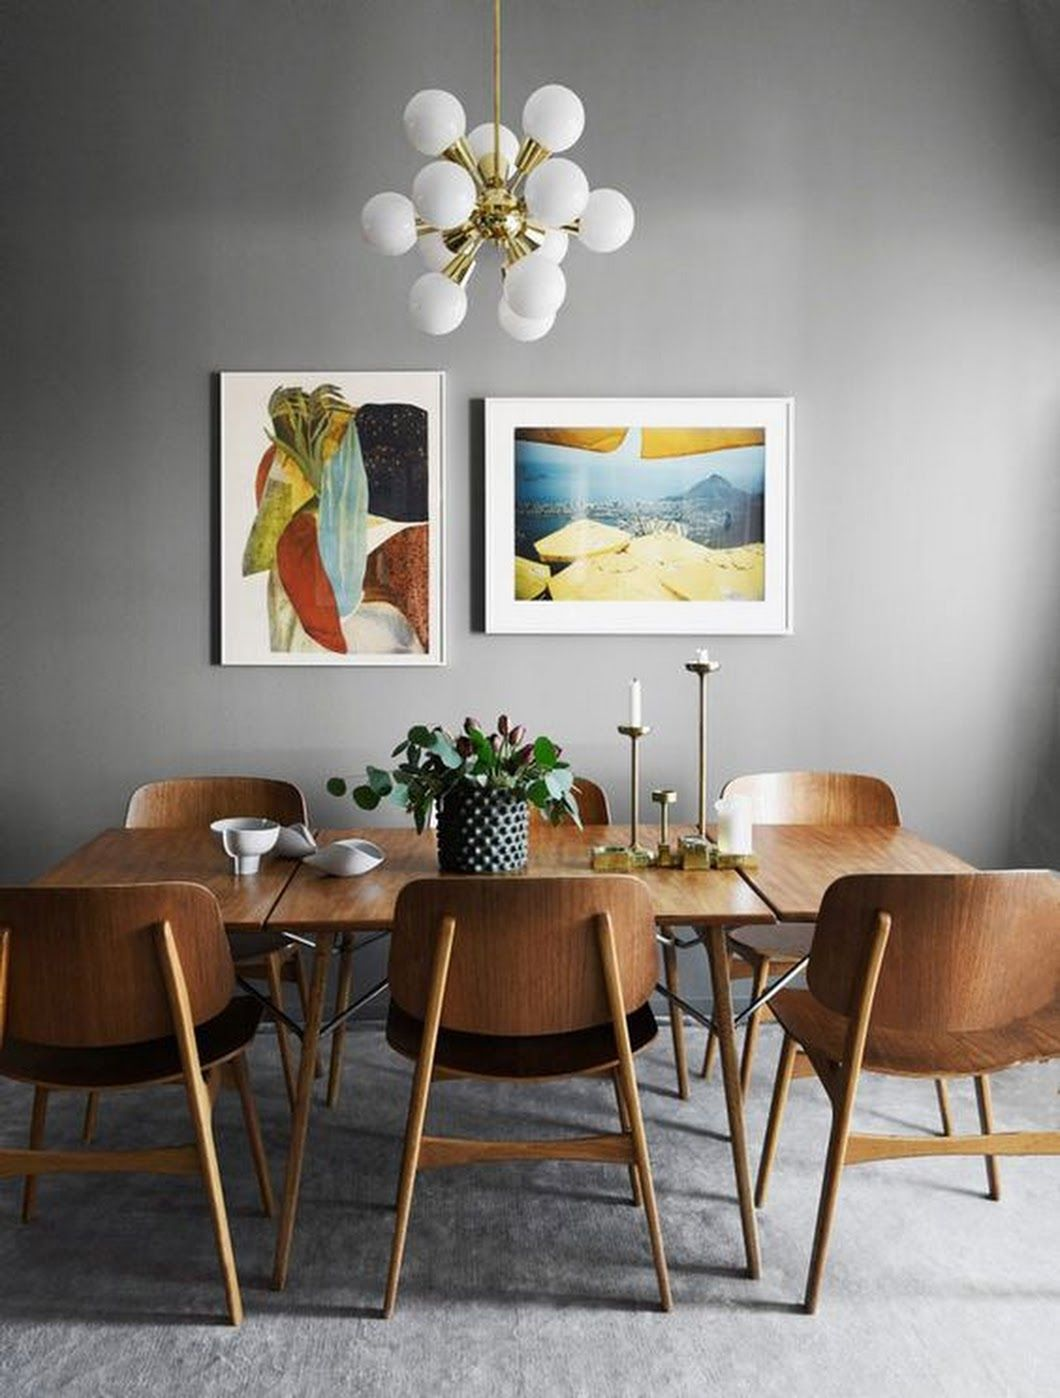 Dining Room Dining Area Mid Century Modern Modern Pendant Light Gallery Wall Grey Wa Mid Century Dining Room Mid Century Modern Dining Modern Dining